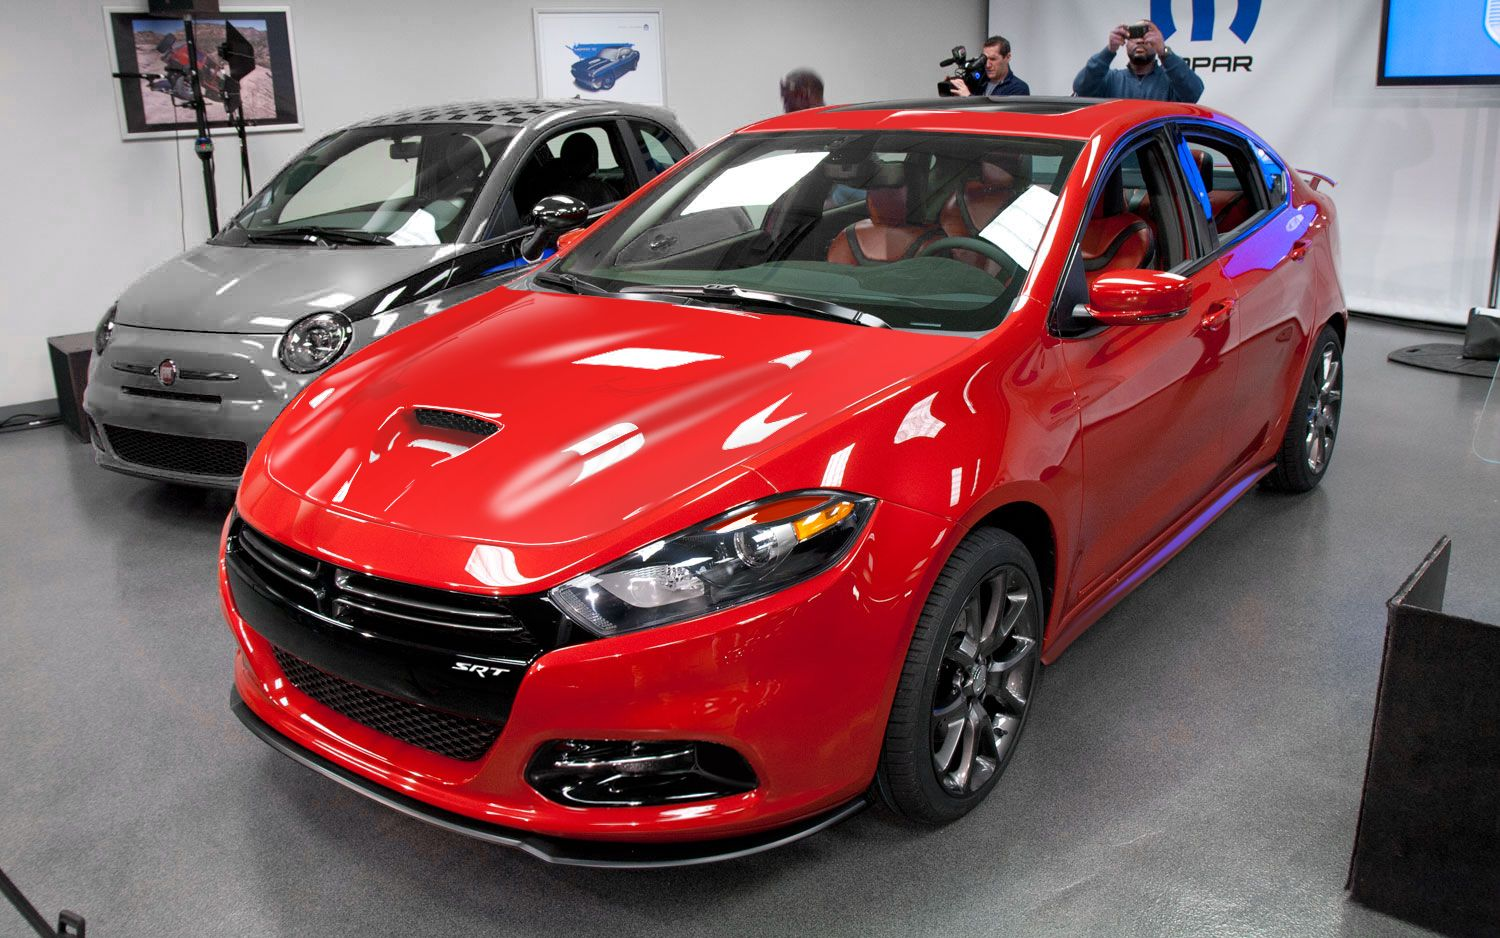 Dodge Dart Gts Bodycolored Hood And Lip Kit With Elevated Wing